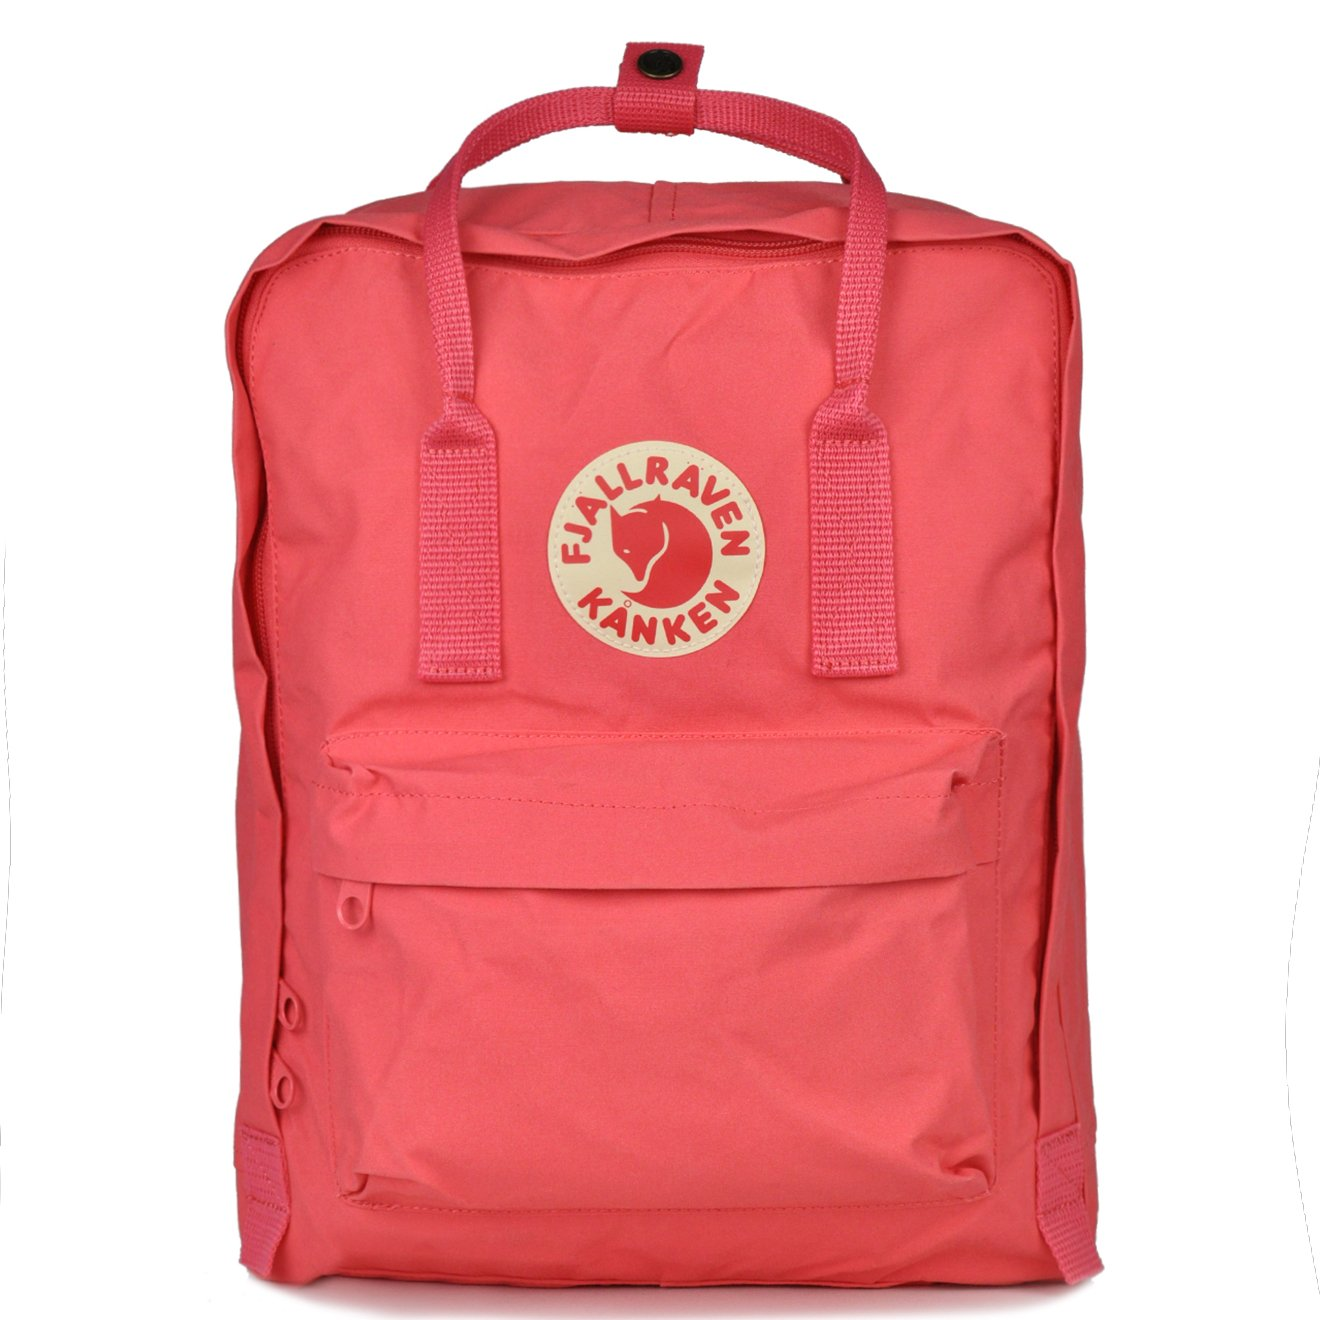 FJALLRAVEN - KANKEN BACKPACK IN PEACH PINK